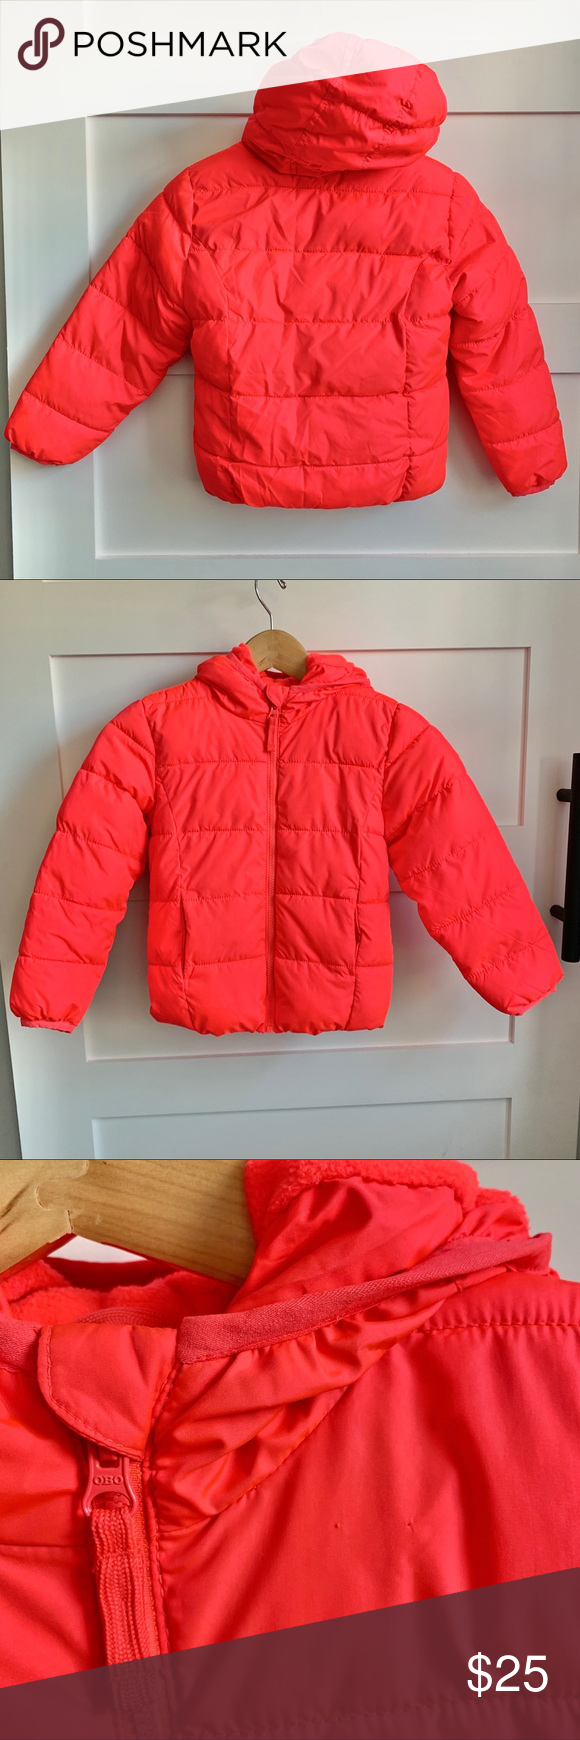 Old Navy Neon Pink Puffer Frost Free Sz S 6 7 Pink Puffer Jacket Neon Pink Old Navy [ 1740 x 580 Pixel ]